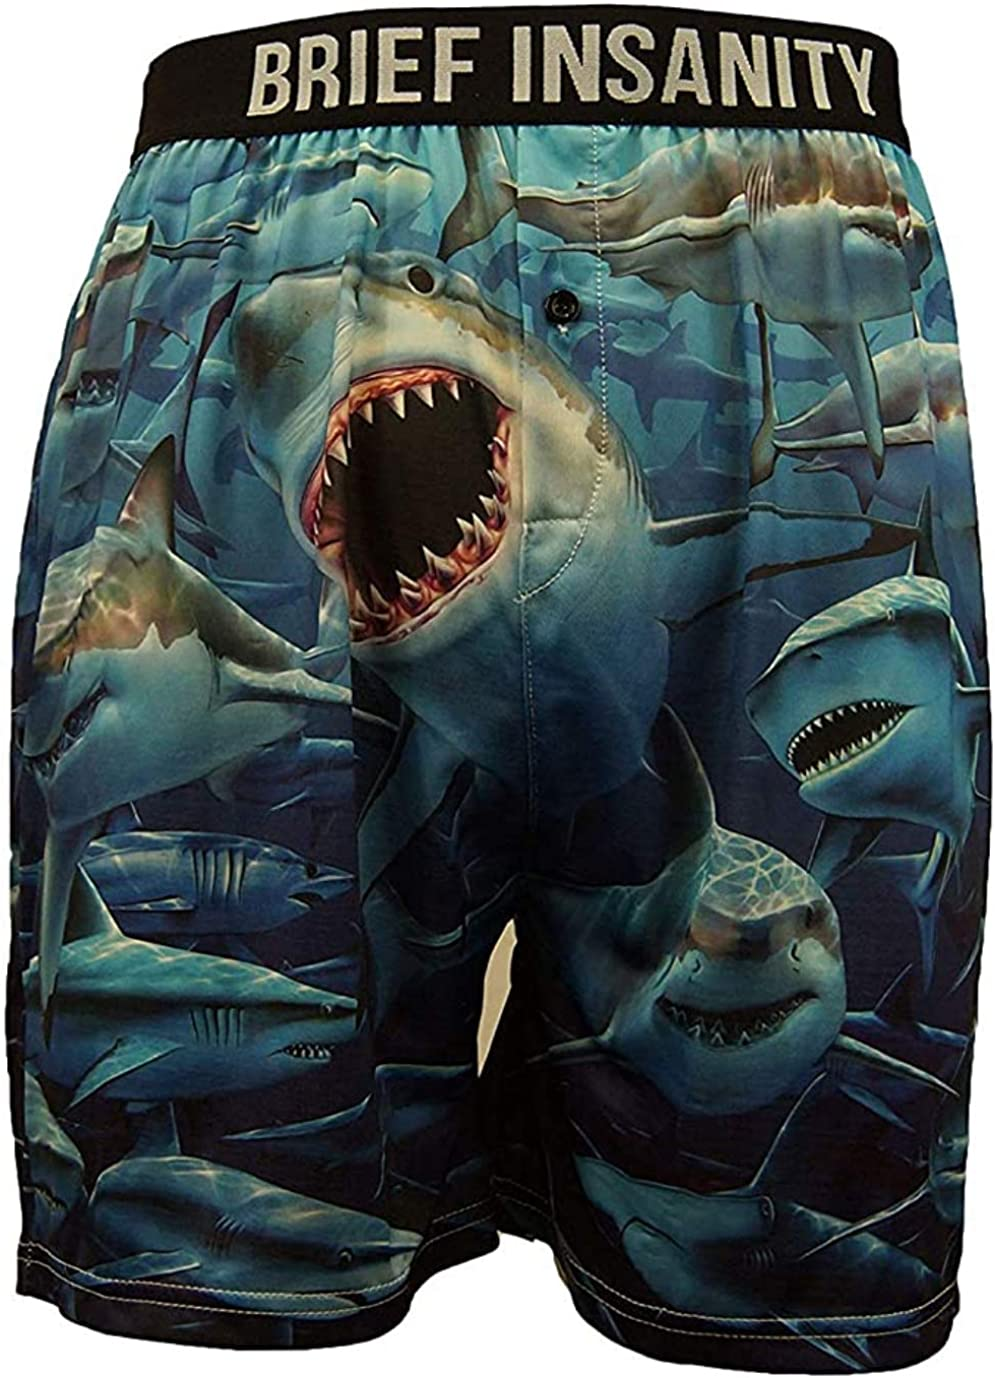 BRIEF INSANITY Shark Boxer Briefs for Men and Women   Great White Boxer Shorts -Soft, Comfy Underwear